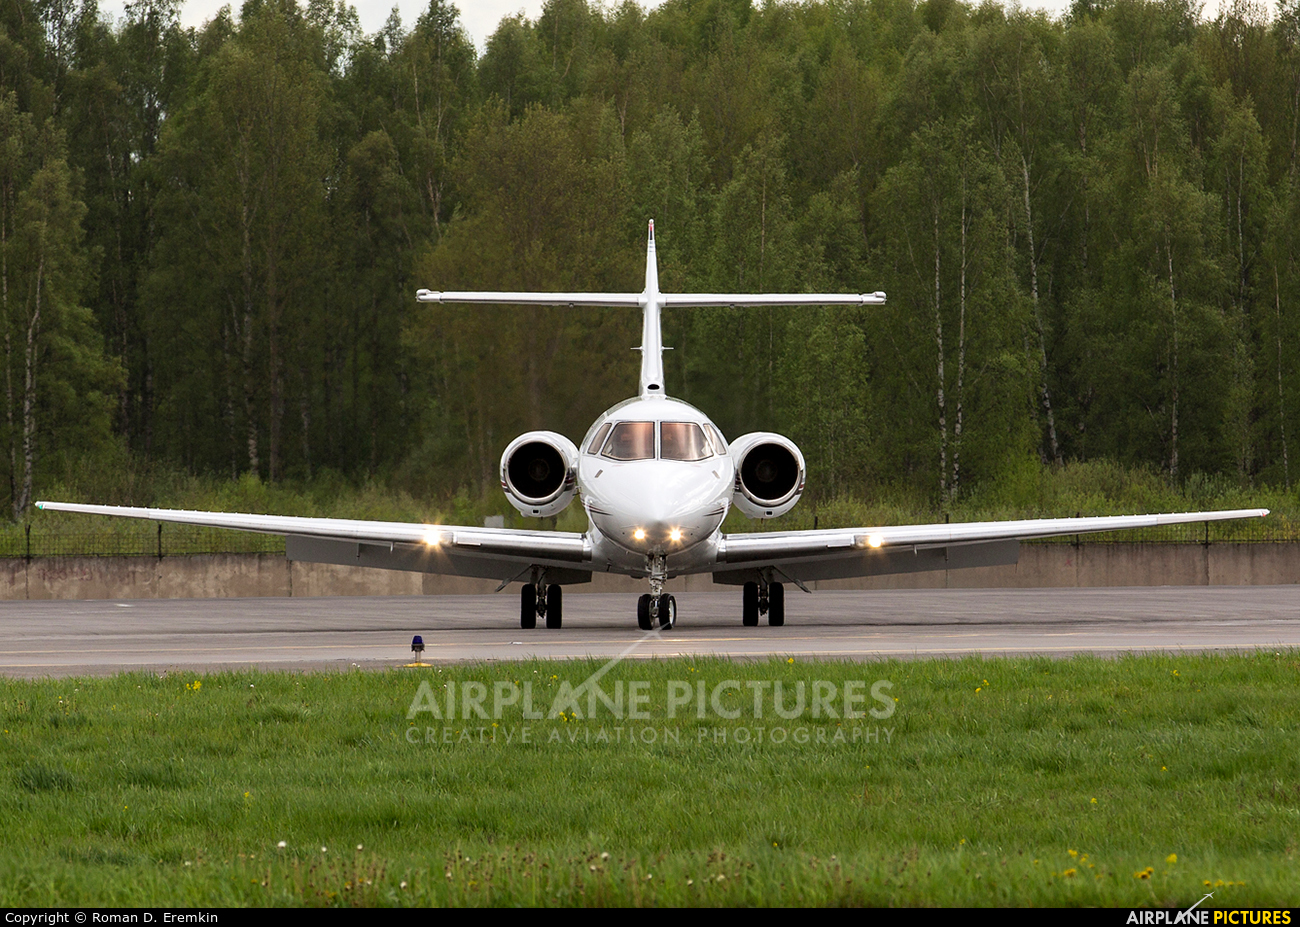 NetJets Europe (Portugal) CS-DRY aircraft at St. Petersburg - Pulkovo